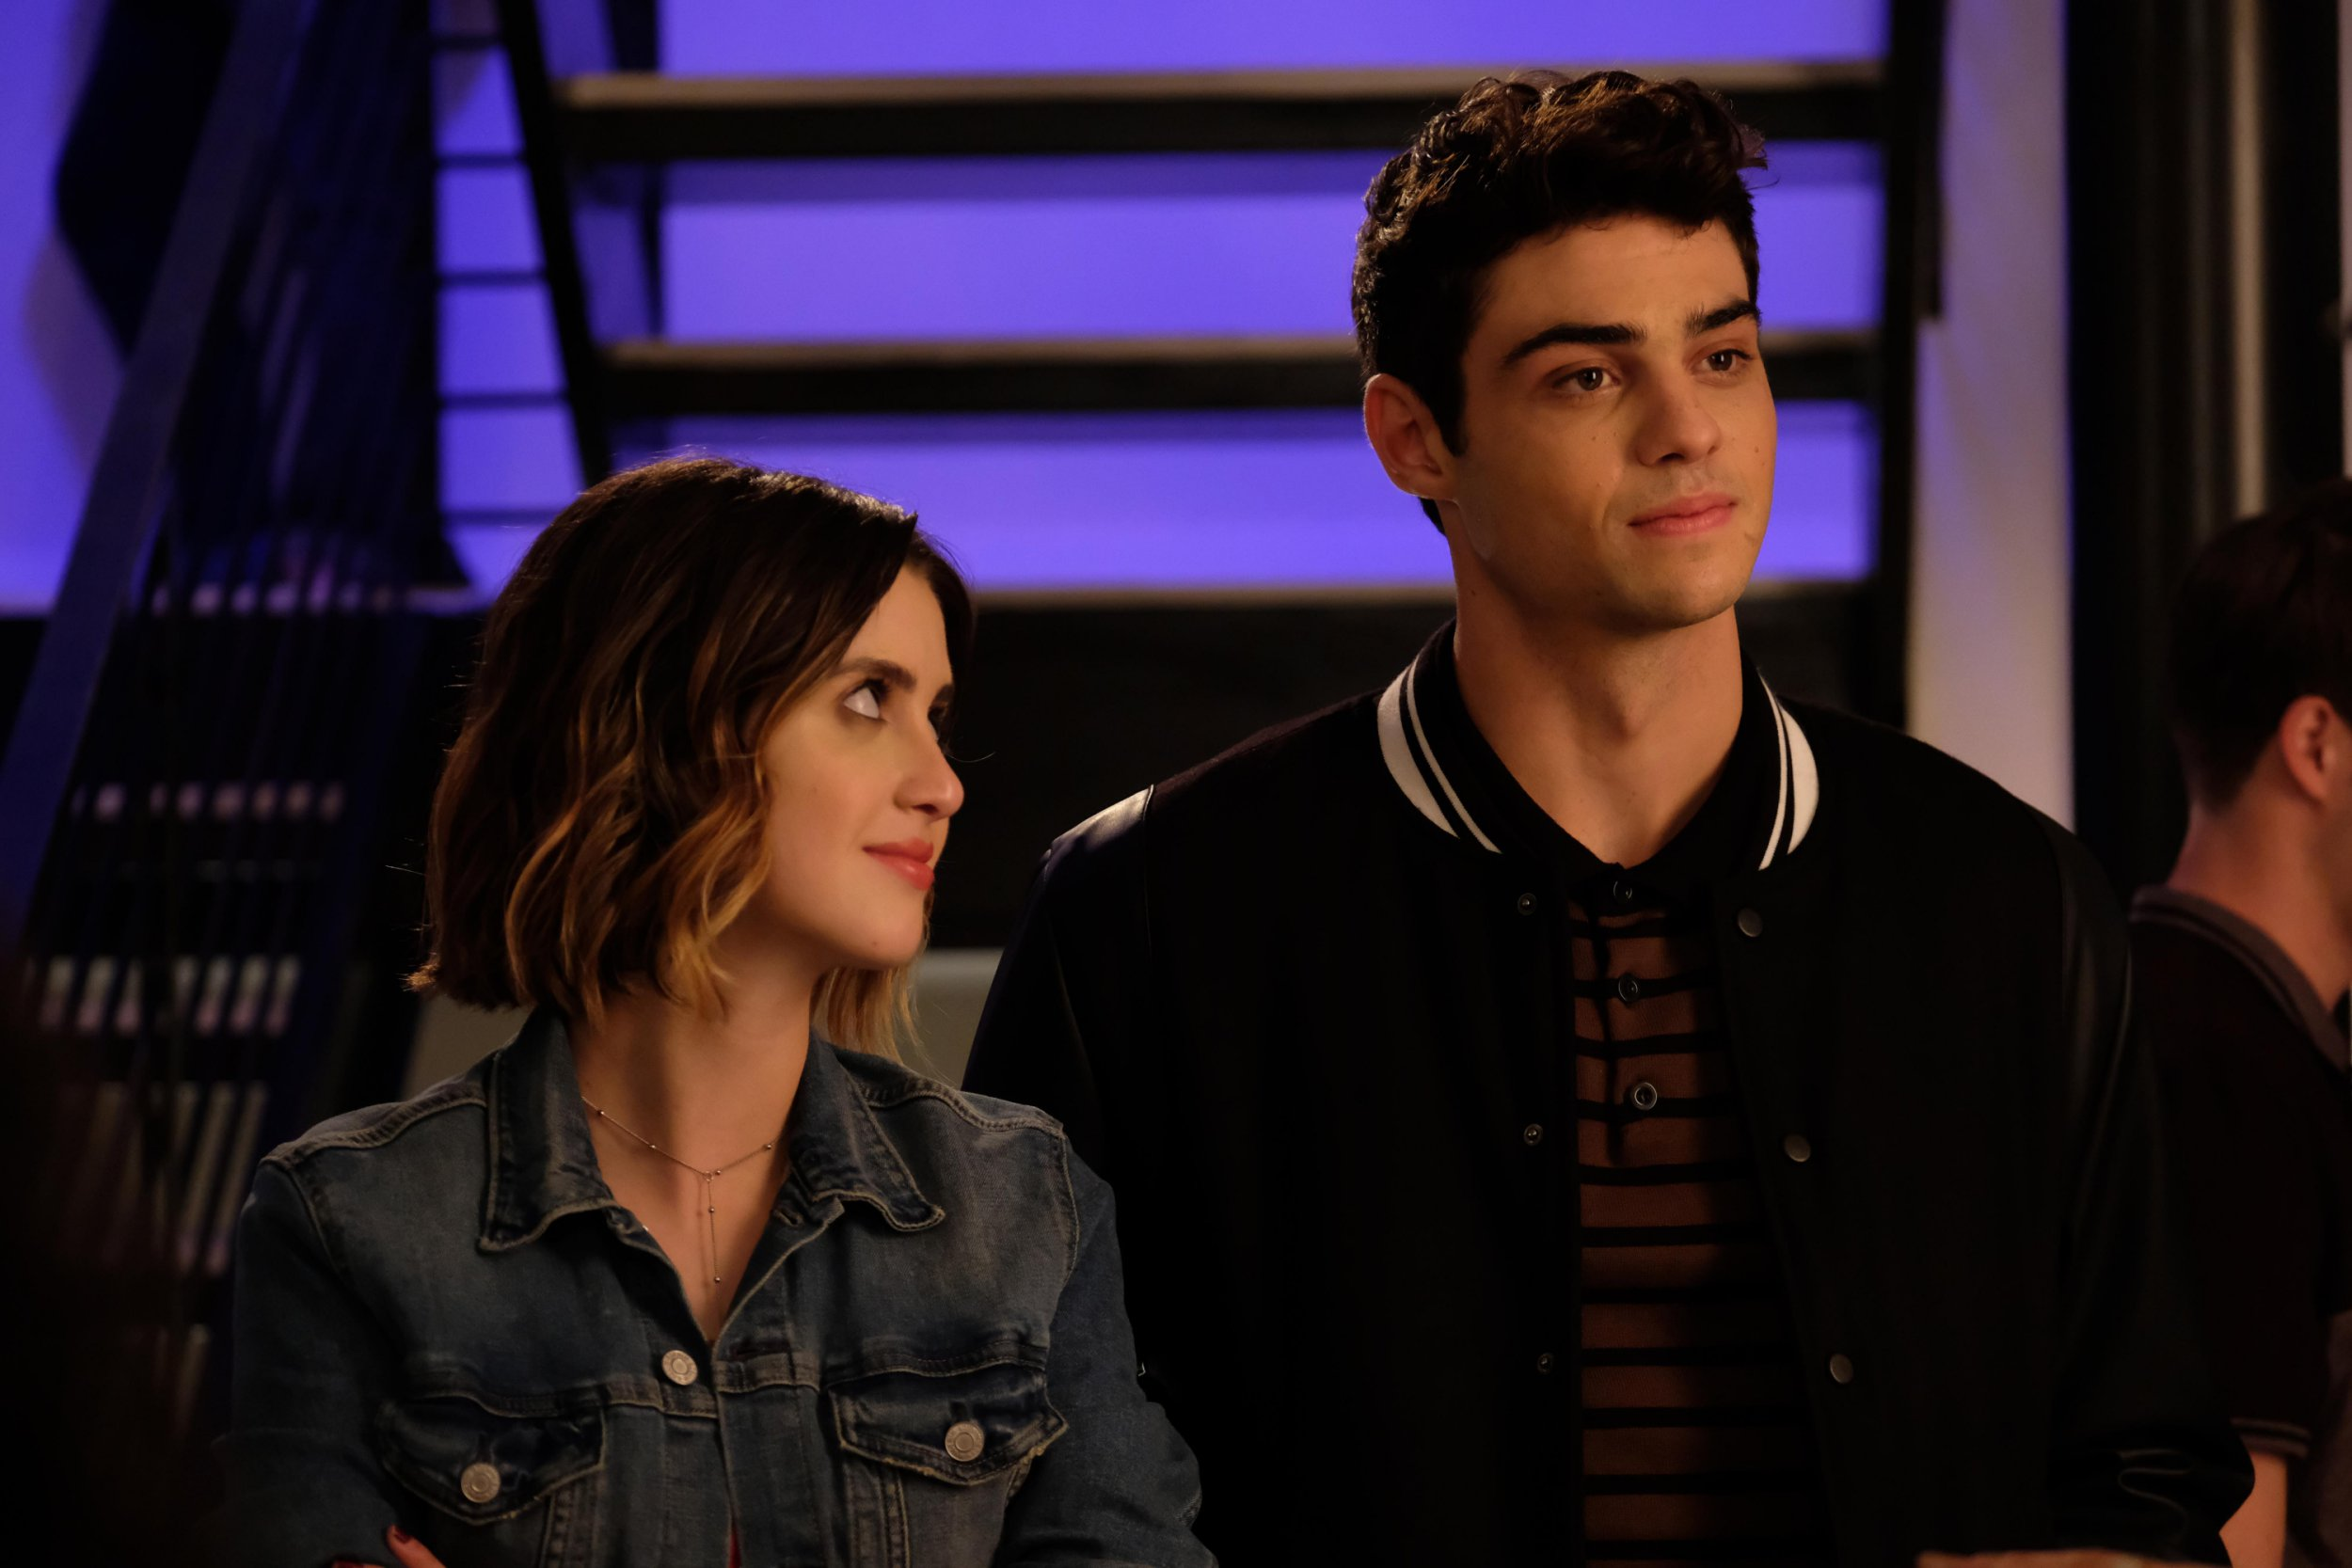 The Perfect Date's Laura Marano says Noah Centineo 'hasn't changed' as she talks Austin and Ally reunion